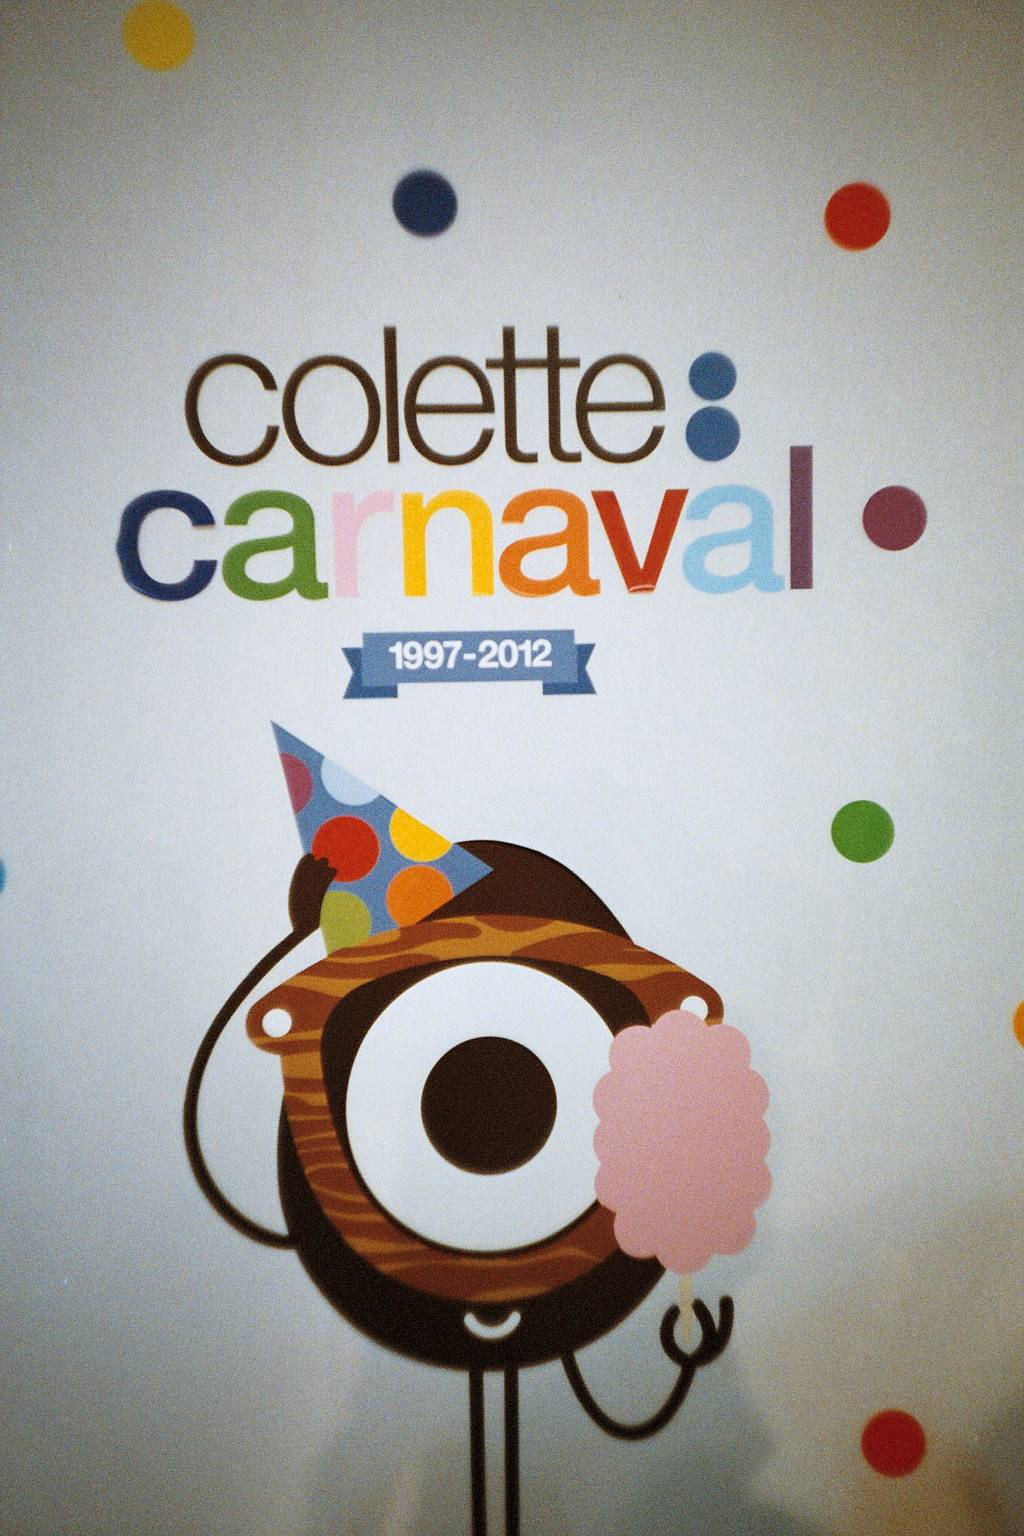 15 Years of Colette